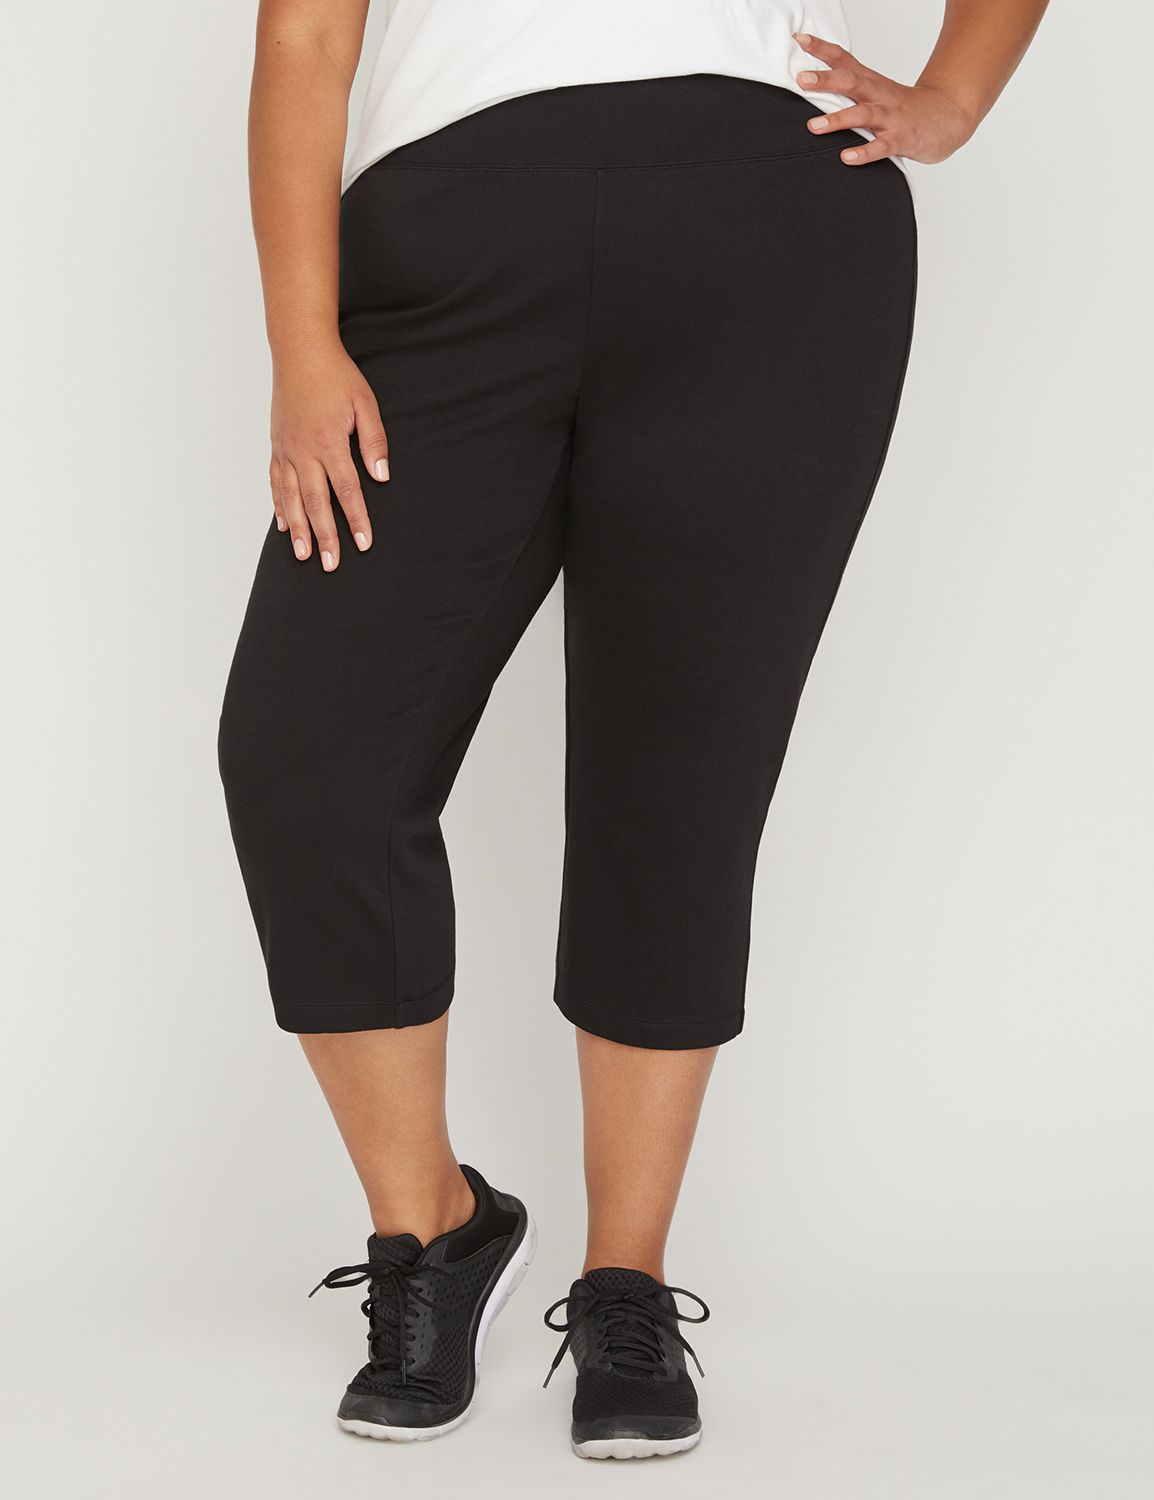 Yoga Capri Yoga Capri MP-300005168